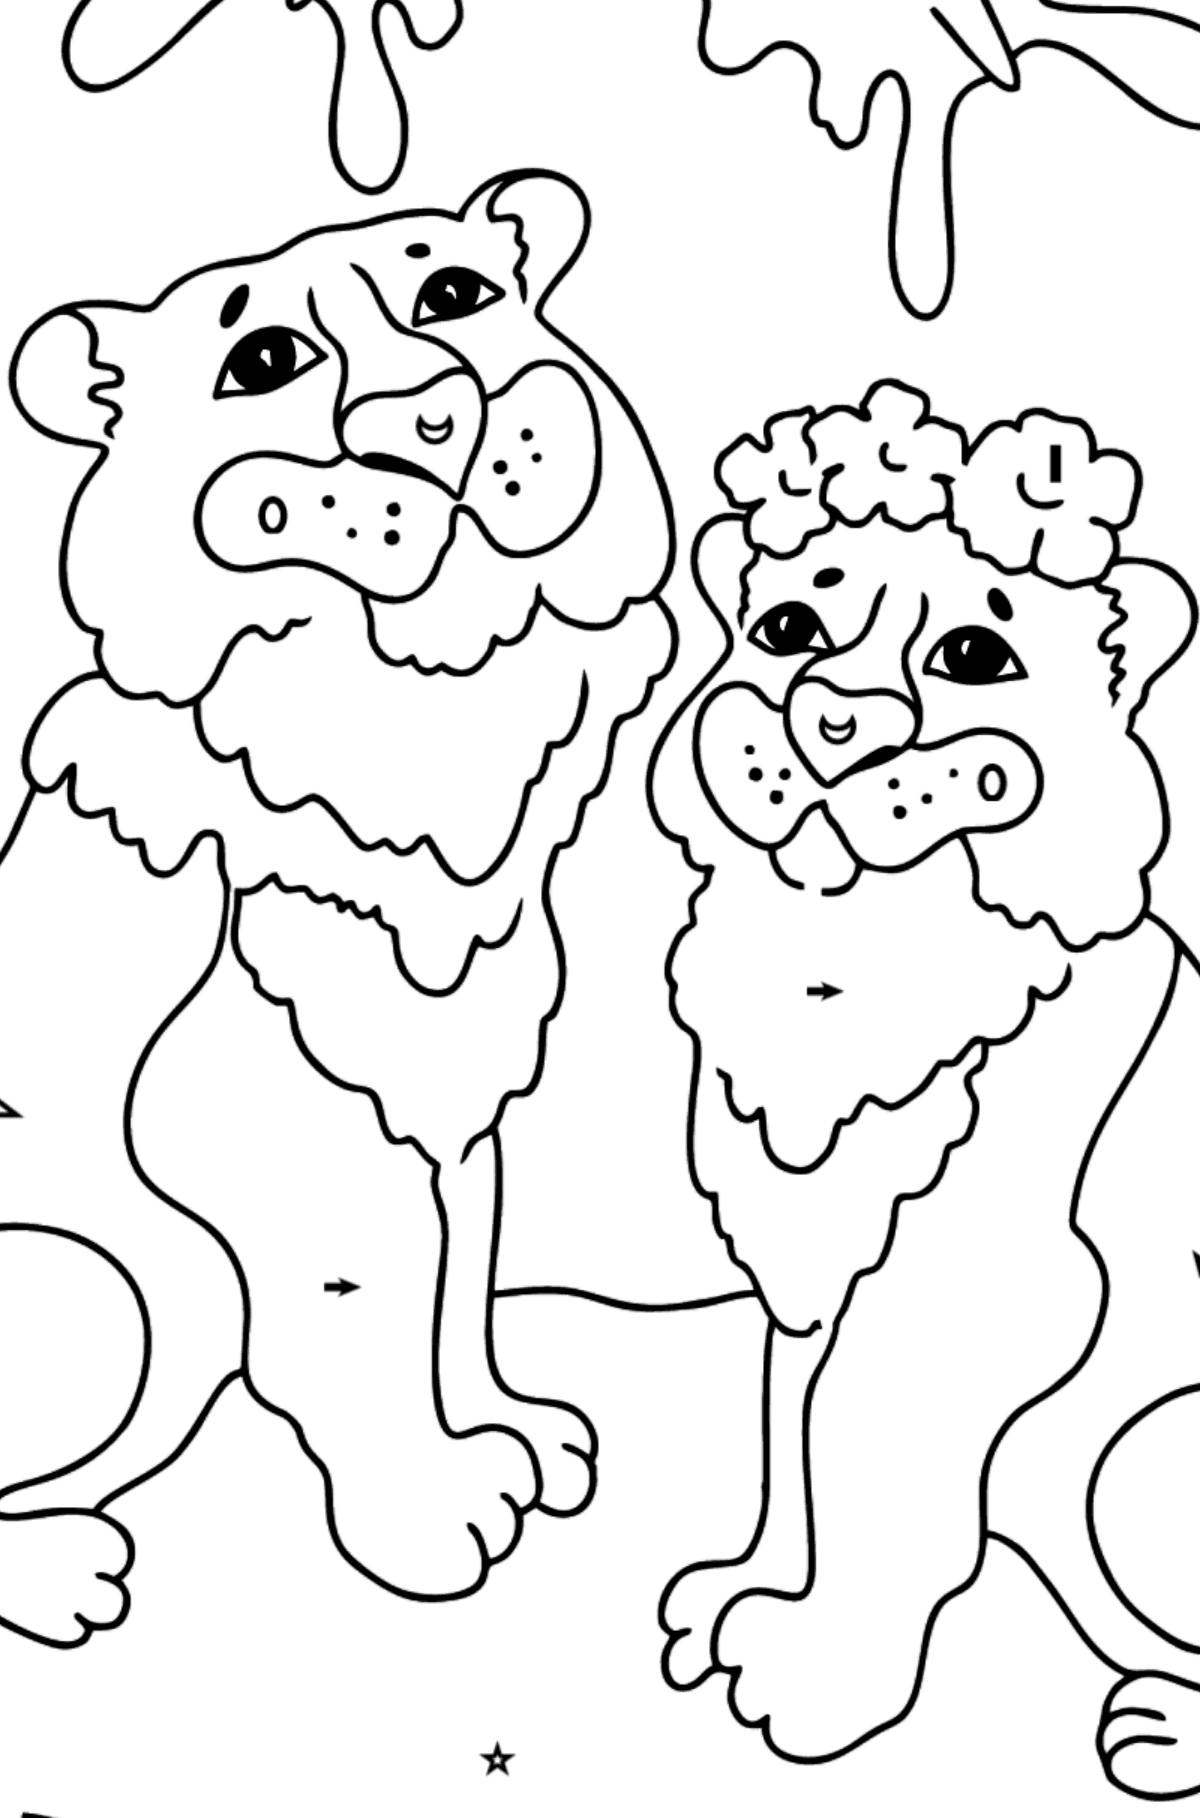 Coloring Page - A Tiger with a Tigress - Coloring by Symbols and Geometric Shapes for Kids